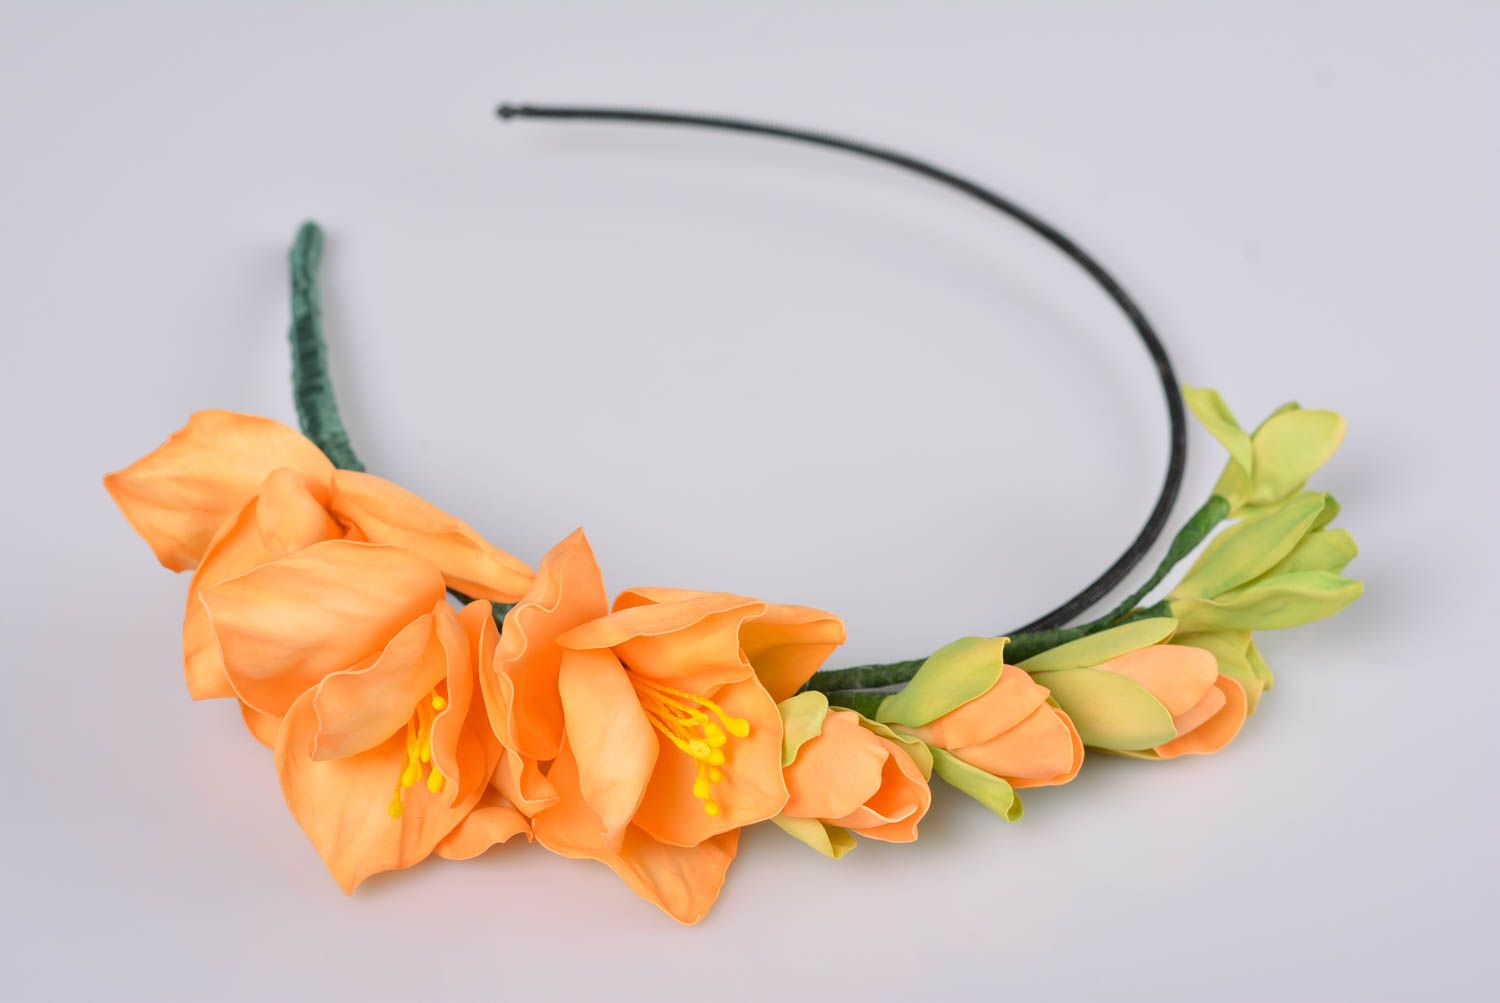 zdroj: https://madeheart.com/en/product/1404163674/Womens-beautiful-handmade-designer-headband-with-orange-foamiran-flowers.html